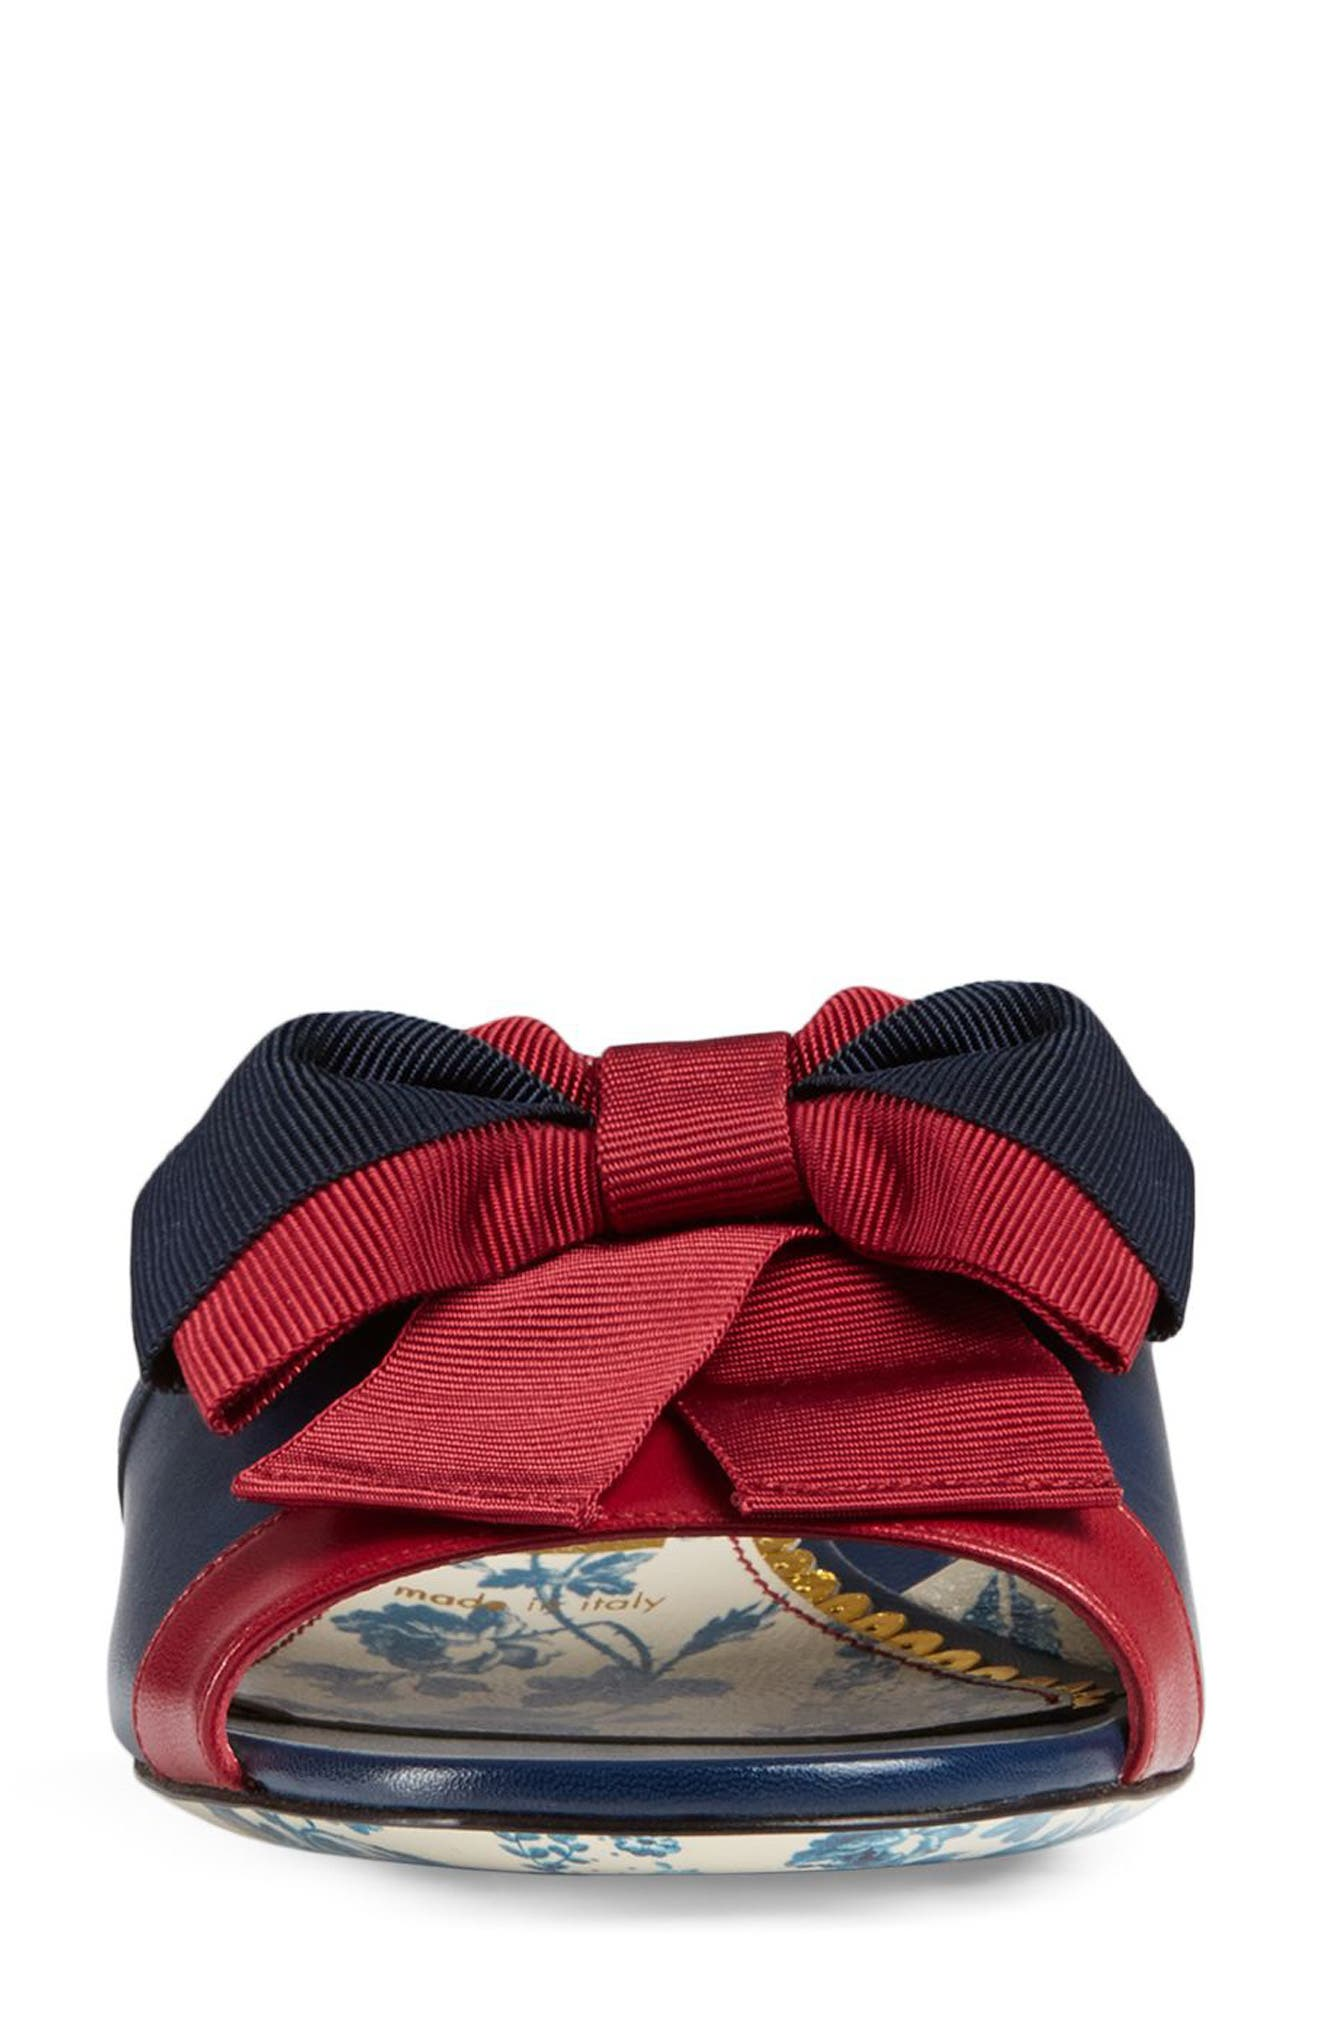 Sackville Bow Sandal,                             Alternate thumbnail 4, color,                             BLUE/ RED